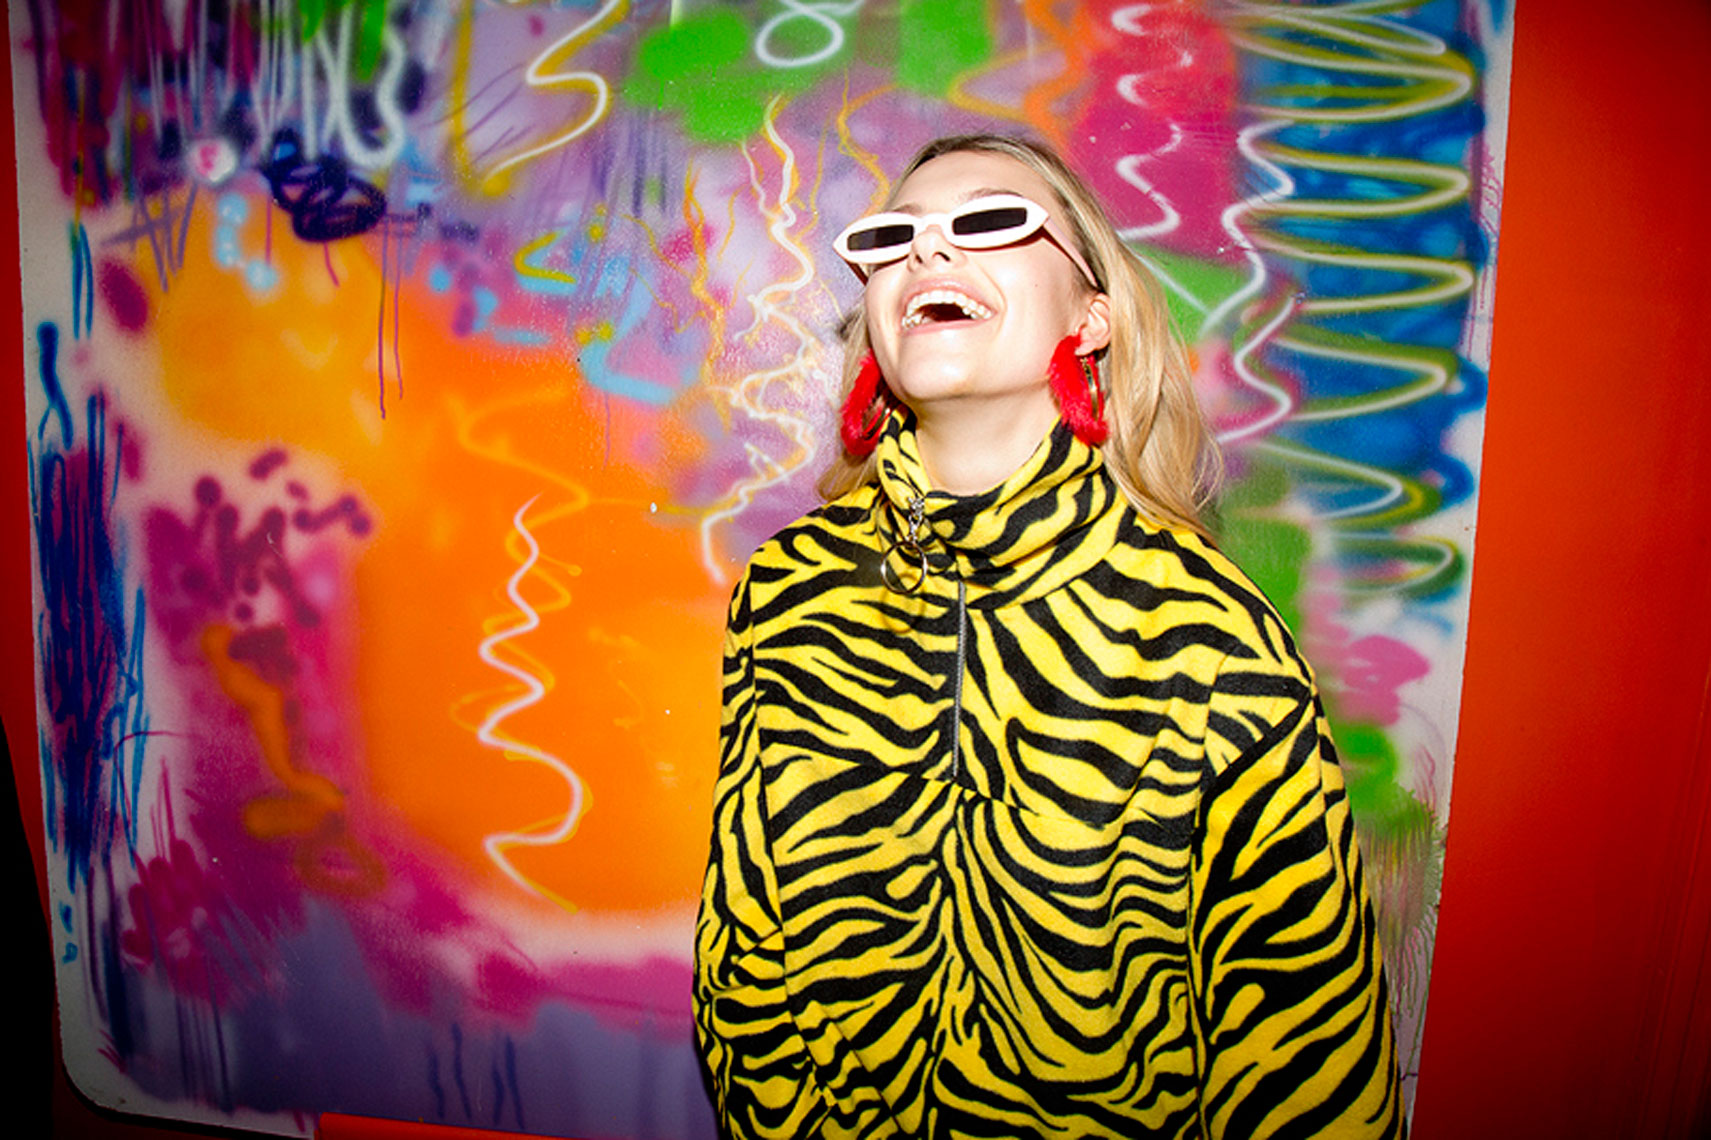 issie-gibbons-fashion-stylist-margate-zebra-colour-fluff-art